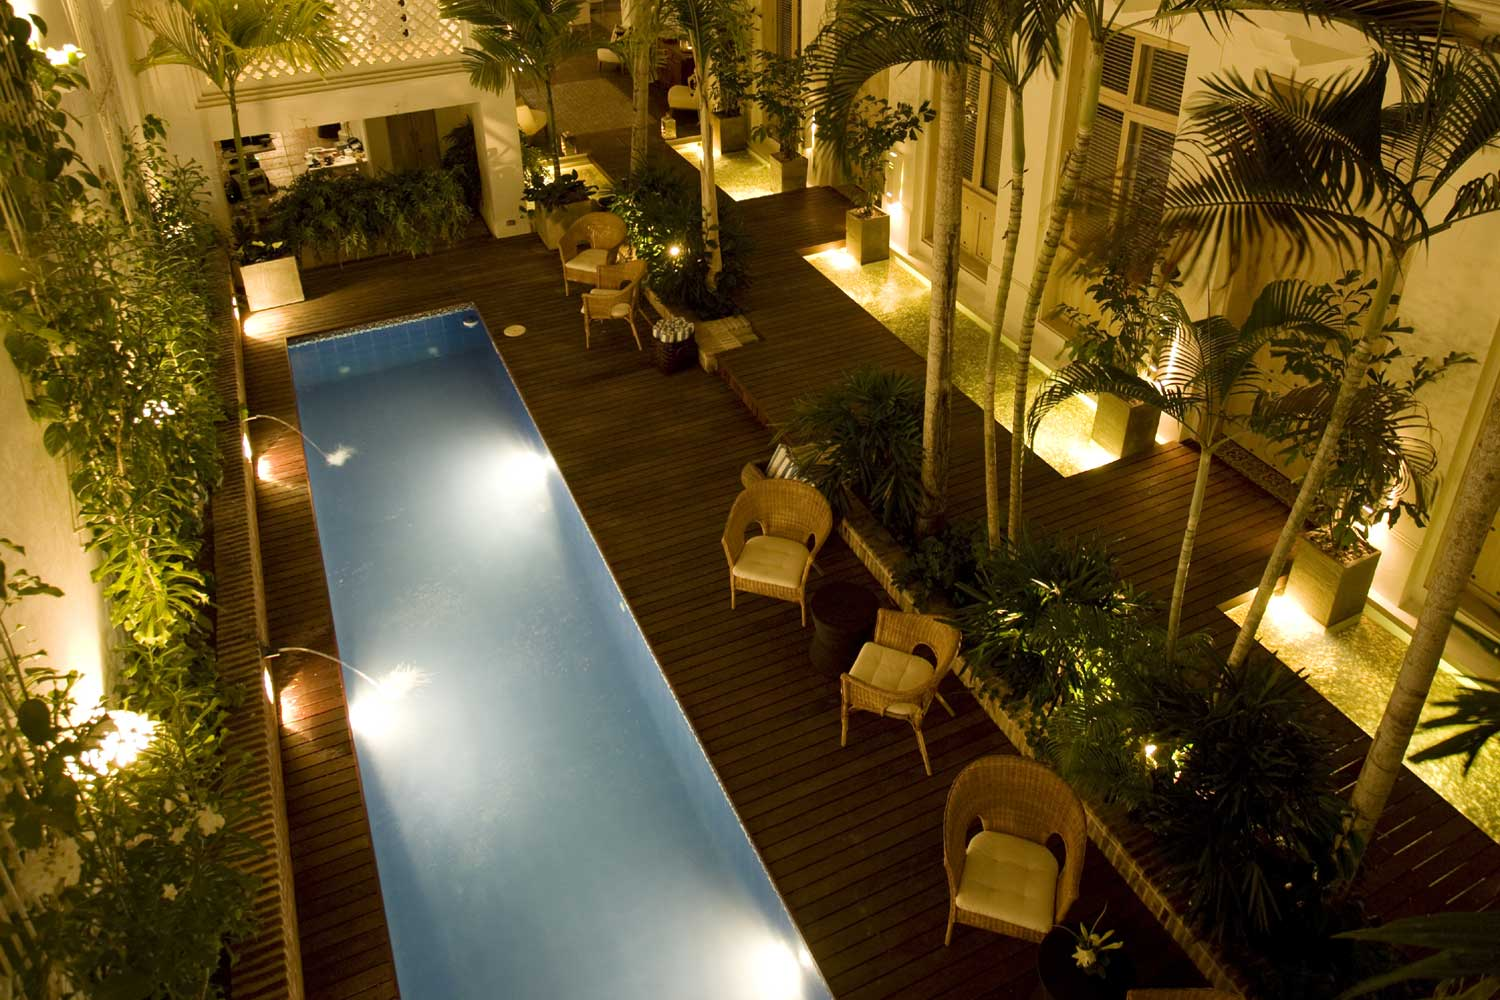 <b>Cartagena, Colombia</b><br/><i>12 Bedrooms, 16,522 sq. ft.</i><br/>18th Century Republican House